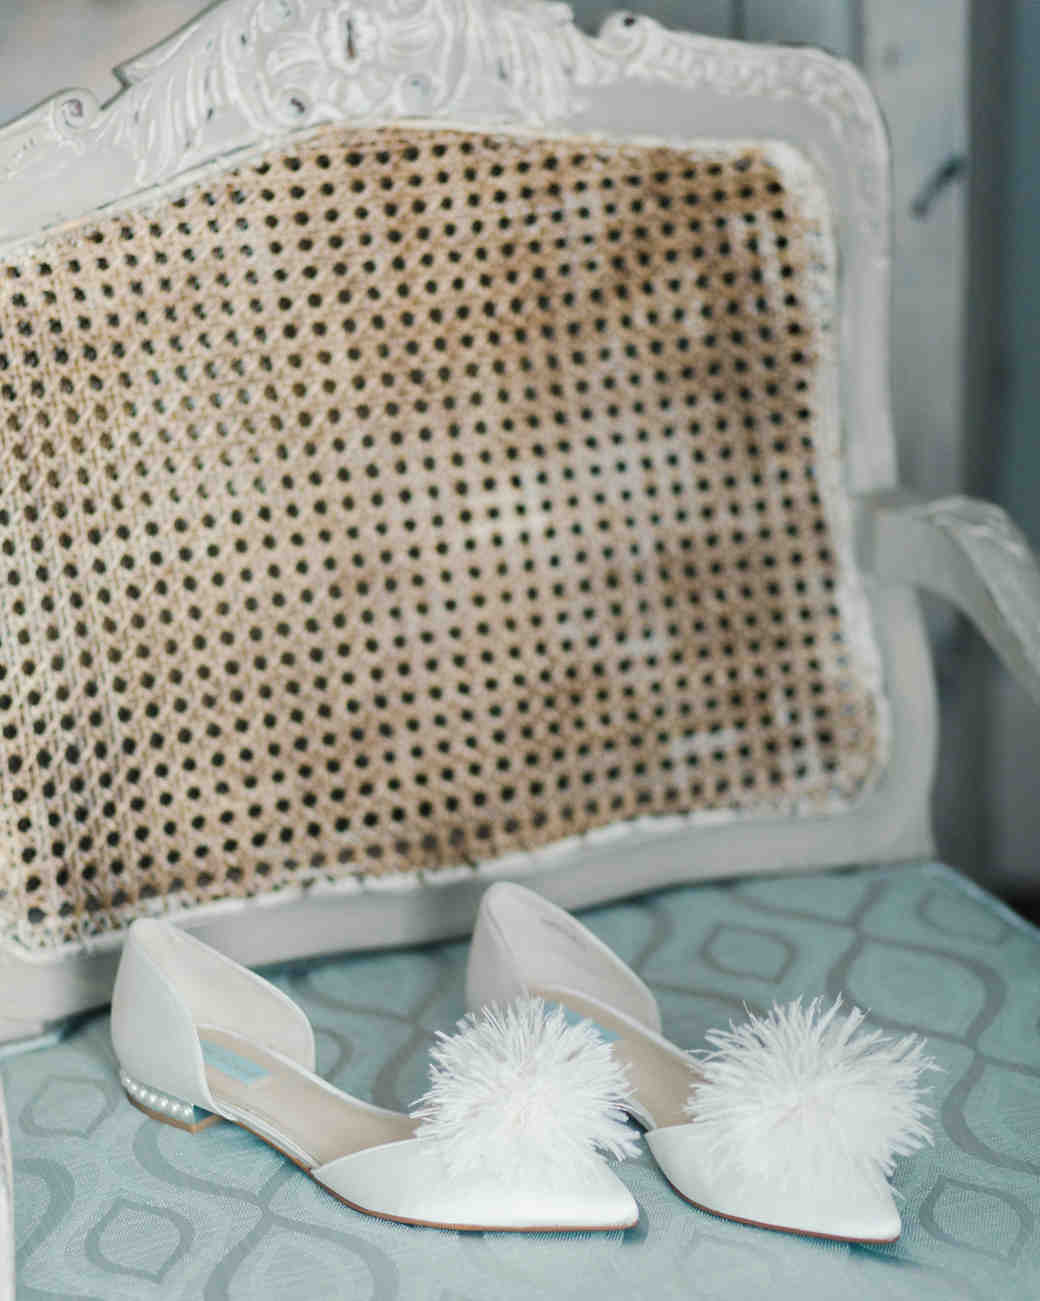 niara allen wedding shoes flat on chair